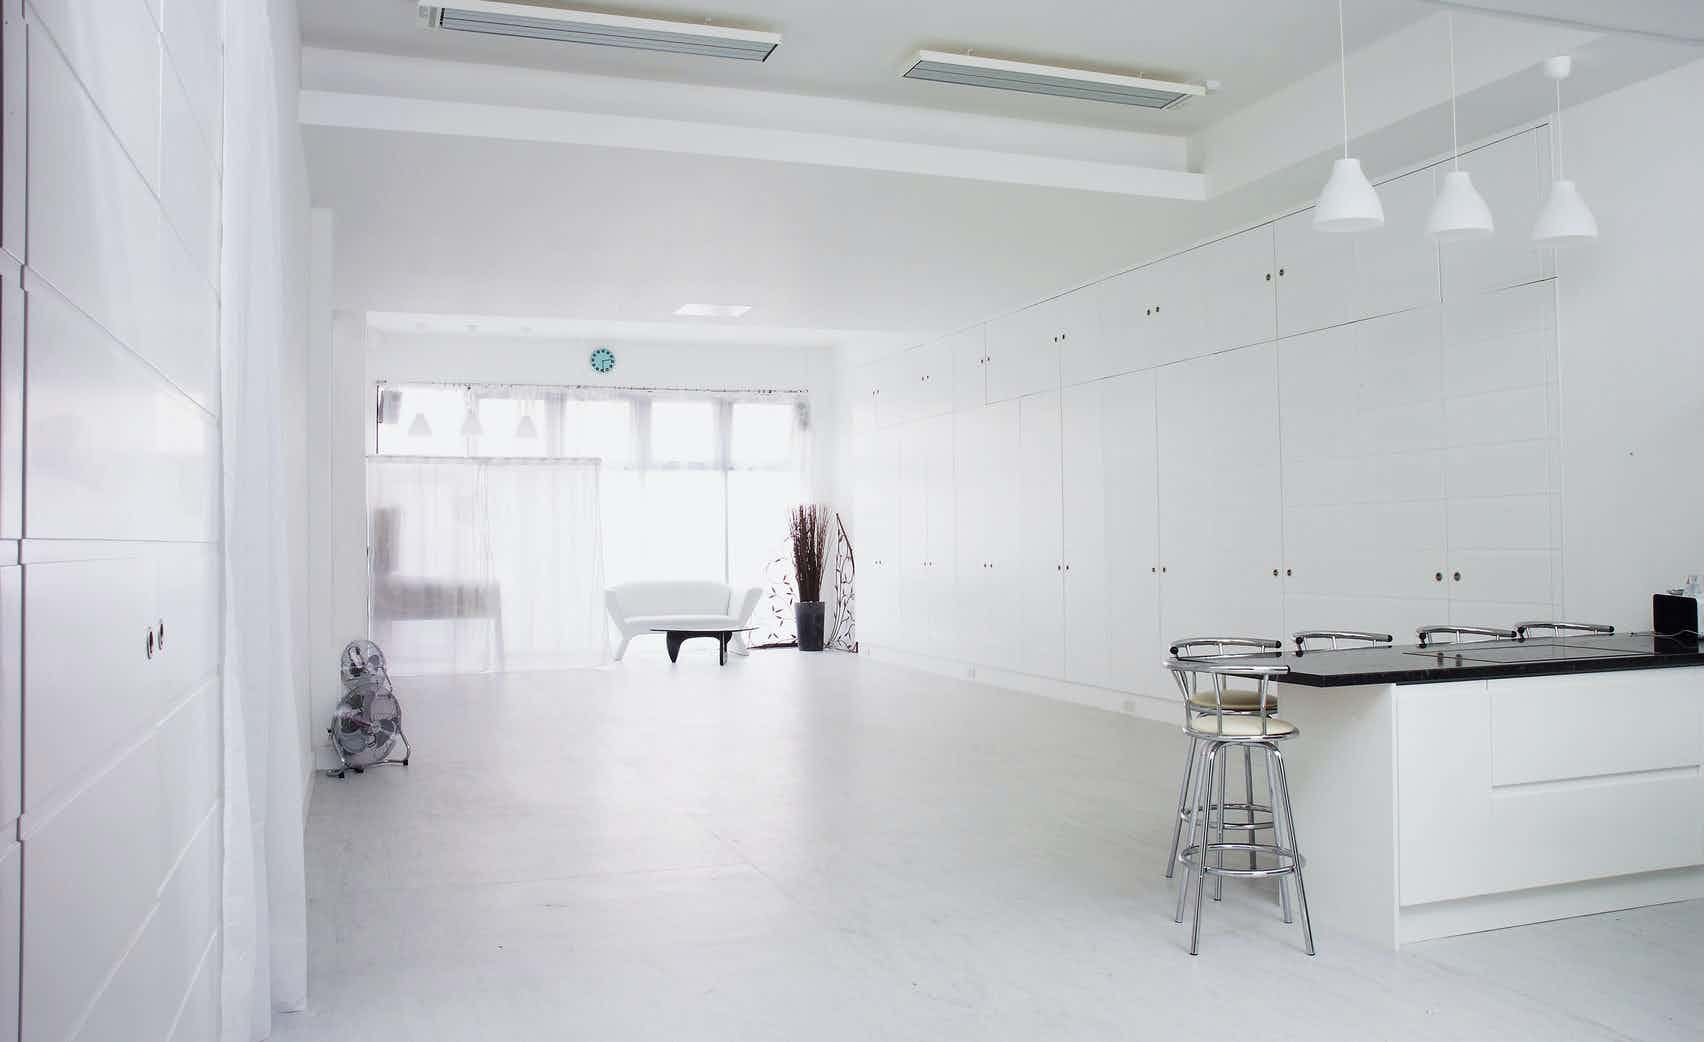 Afternoon Hire, Photography Studio, N1 Studios